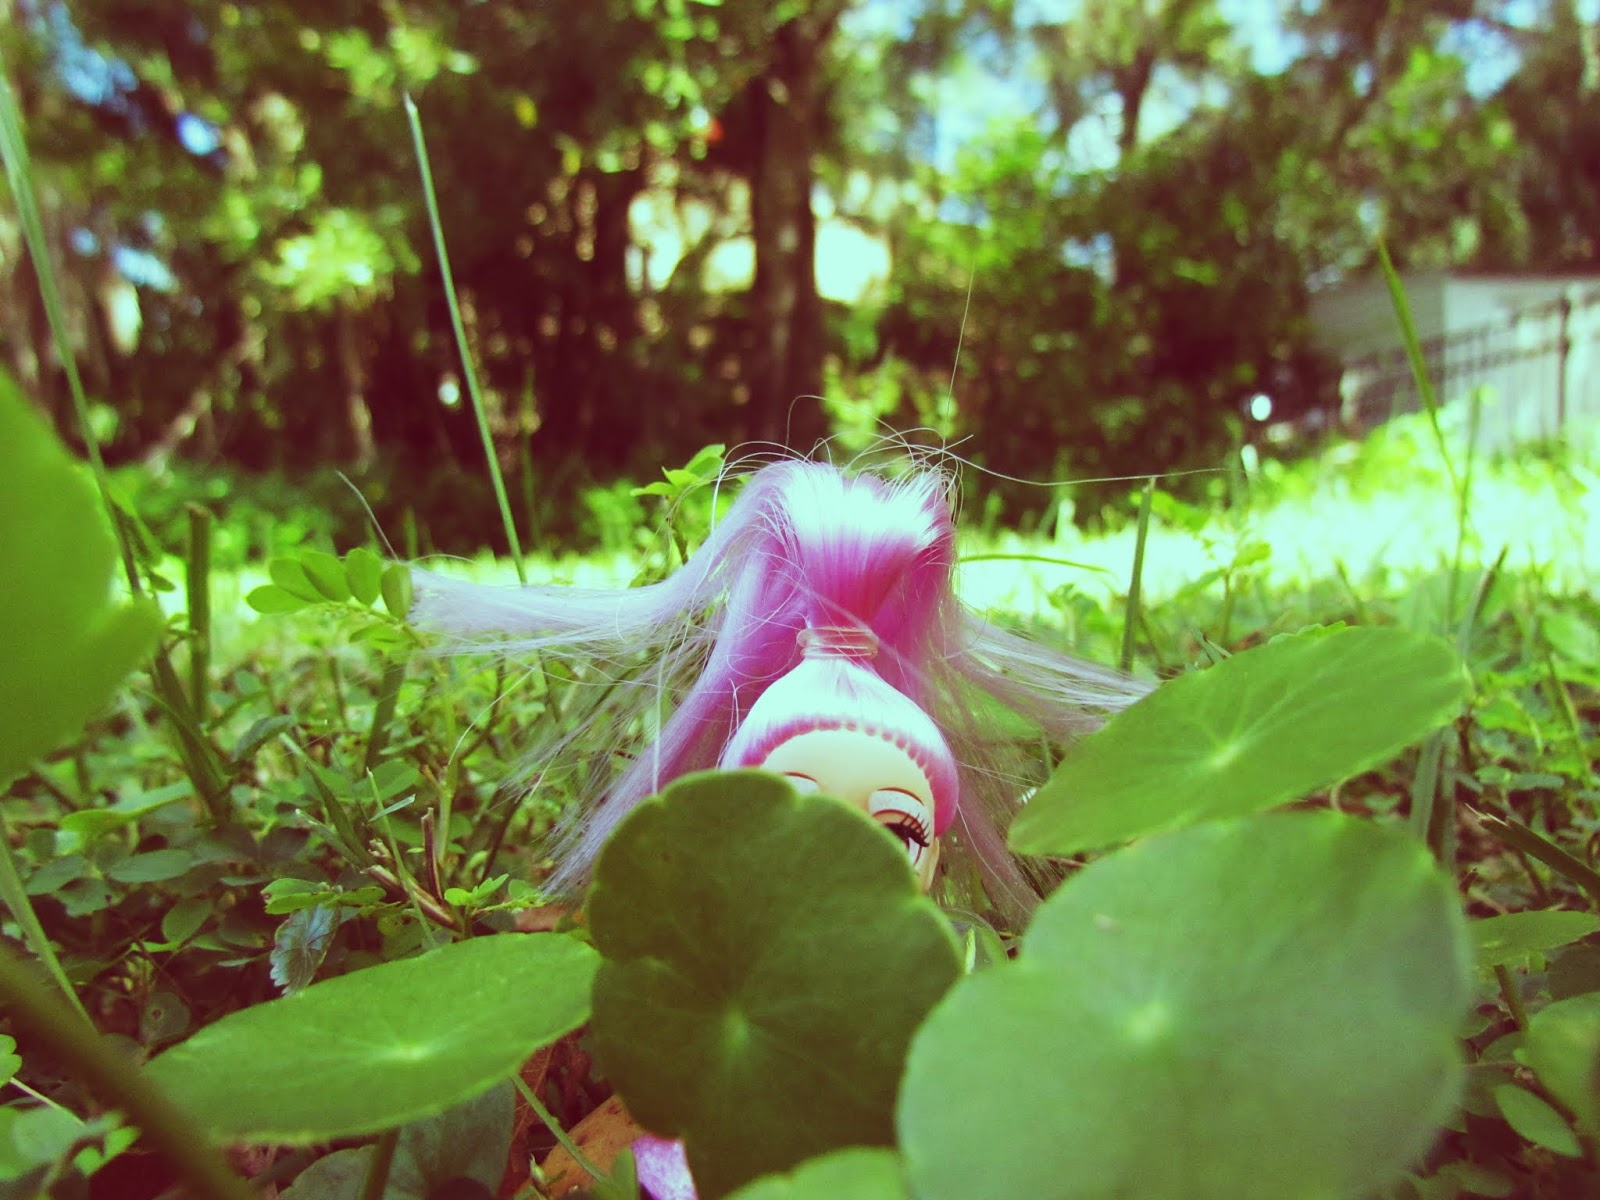 A pink fairy toy doll hiding in the green grass and clovers with bright pink hair